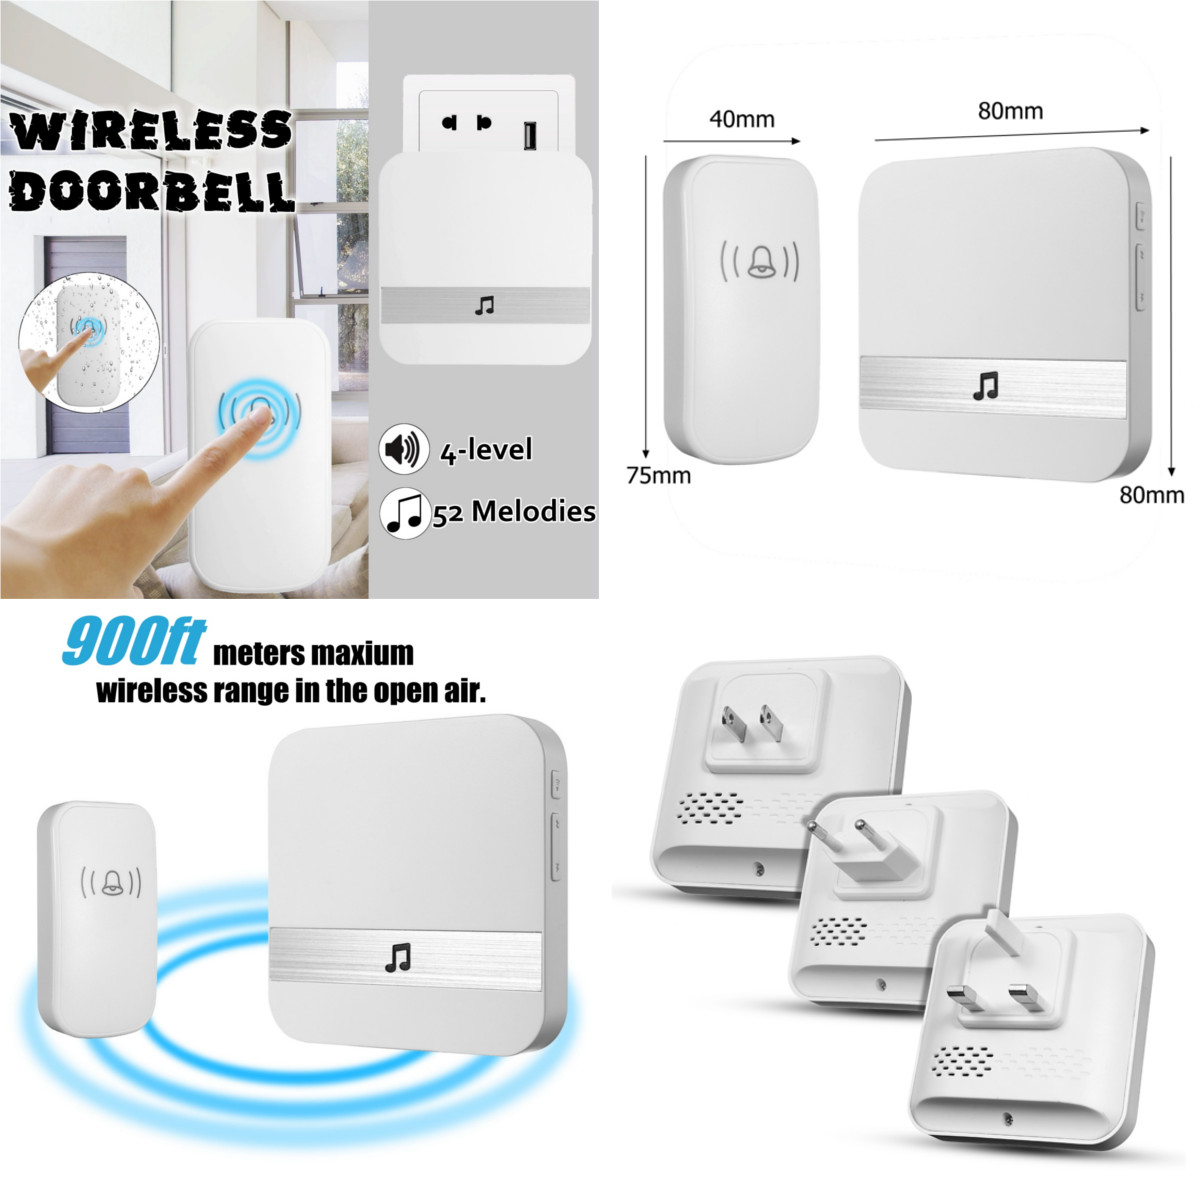 300M Waterproof LED Wireless Doorbell EU/US/UK Plug 52 Songs Chime Door Bell 1 Receiver 1 Button mastech ms8260g 2 5 lcd multimeter w test pencils for capacitance frequency temperature